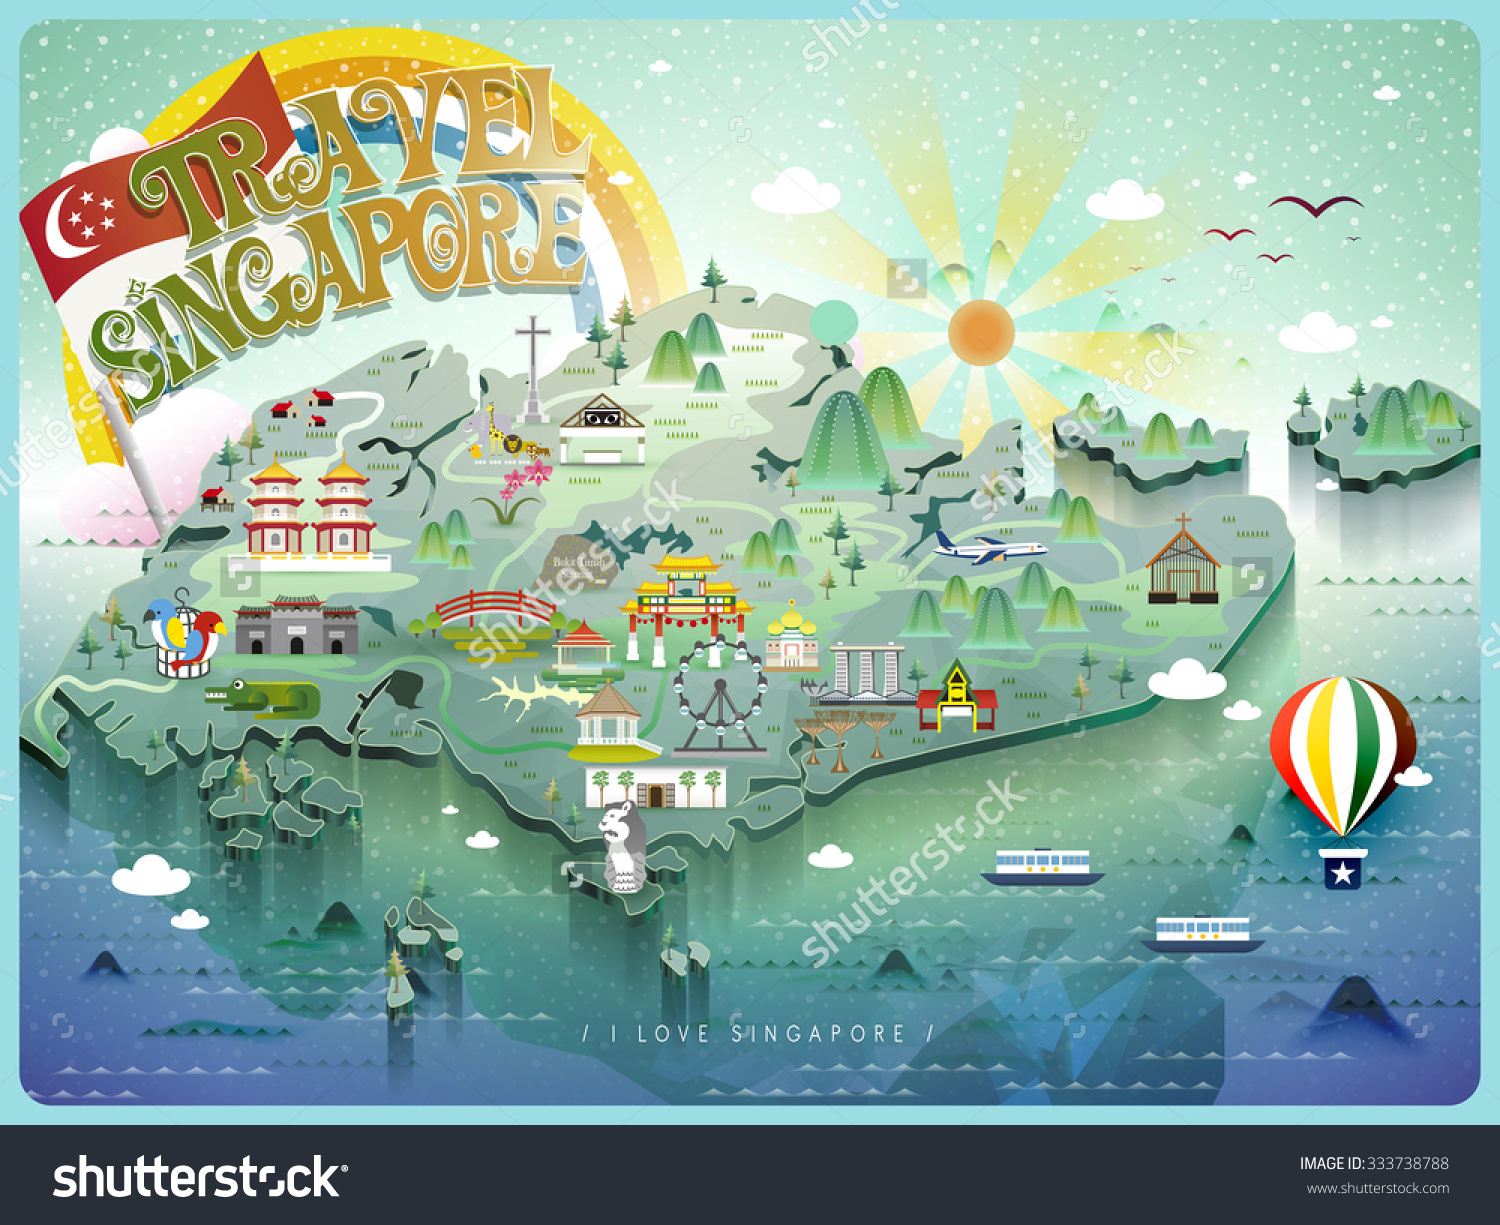 Attractive Singapore Travel Map Colorful Attractions – Singapore Tourist Map